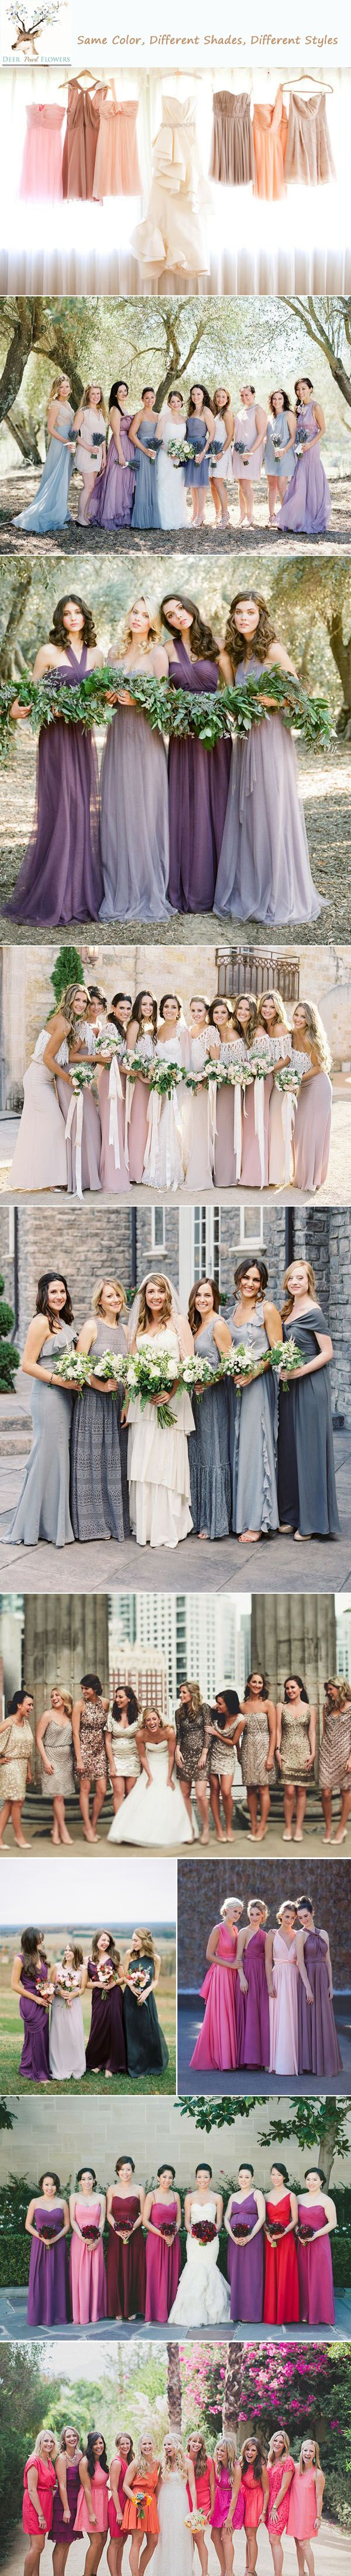 bridesmaid-dresses                                                                                                                                                                                 More